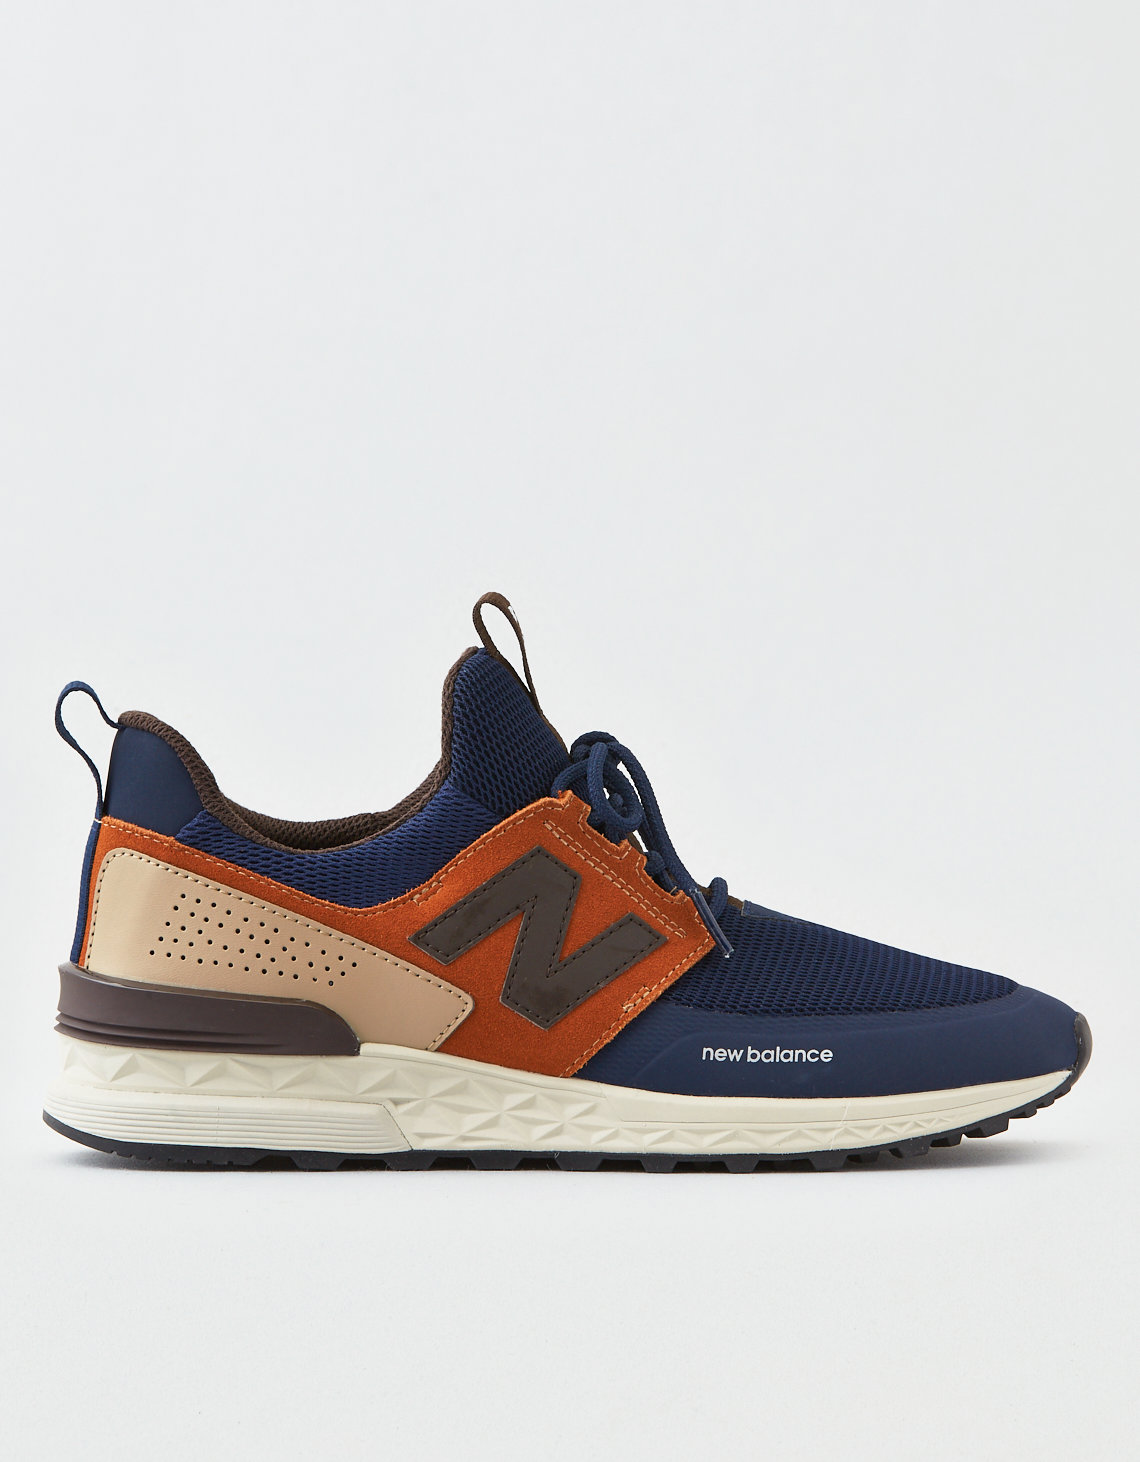 quality design 126f2 6f0ba ... germany new balance 574 sport decon. placeholder image. product image  b7c81 7c42c